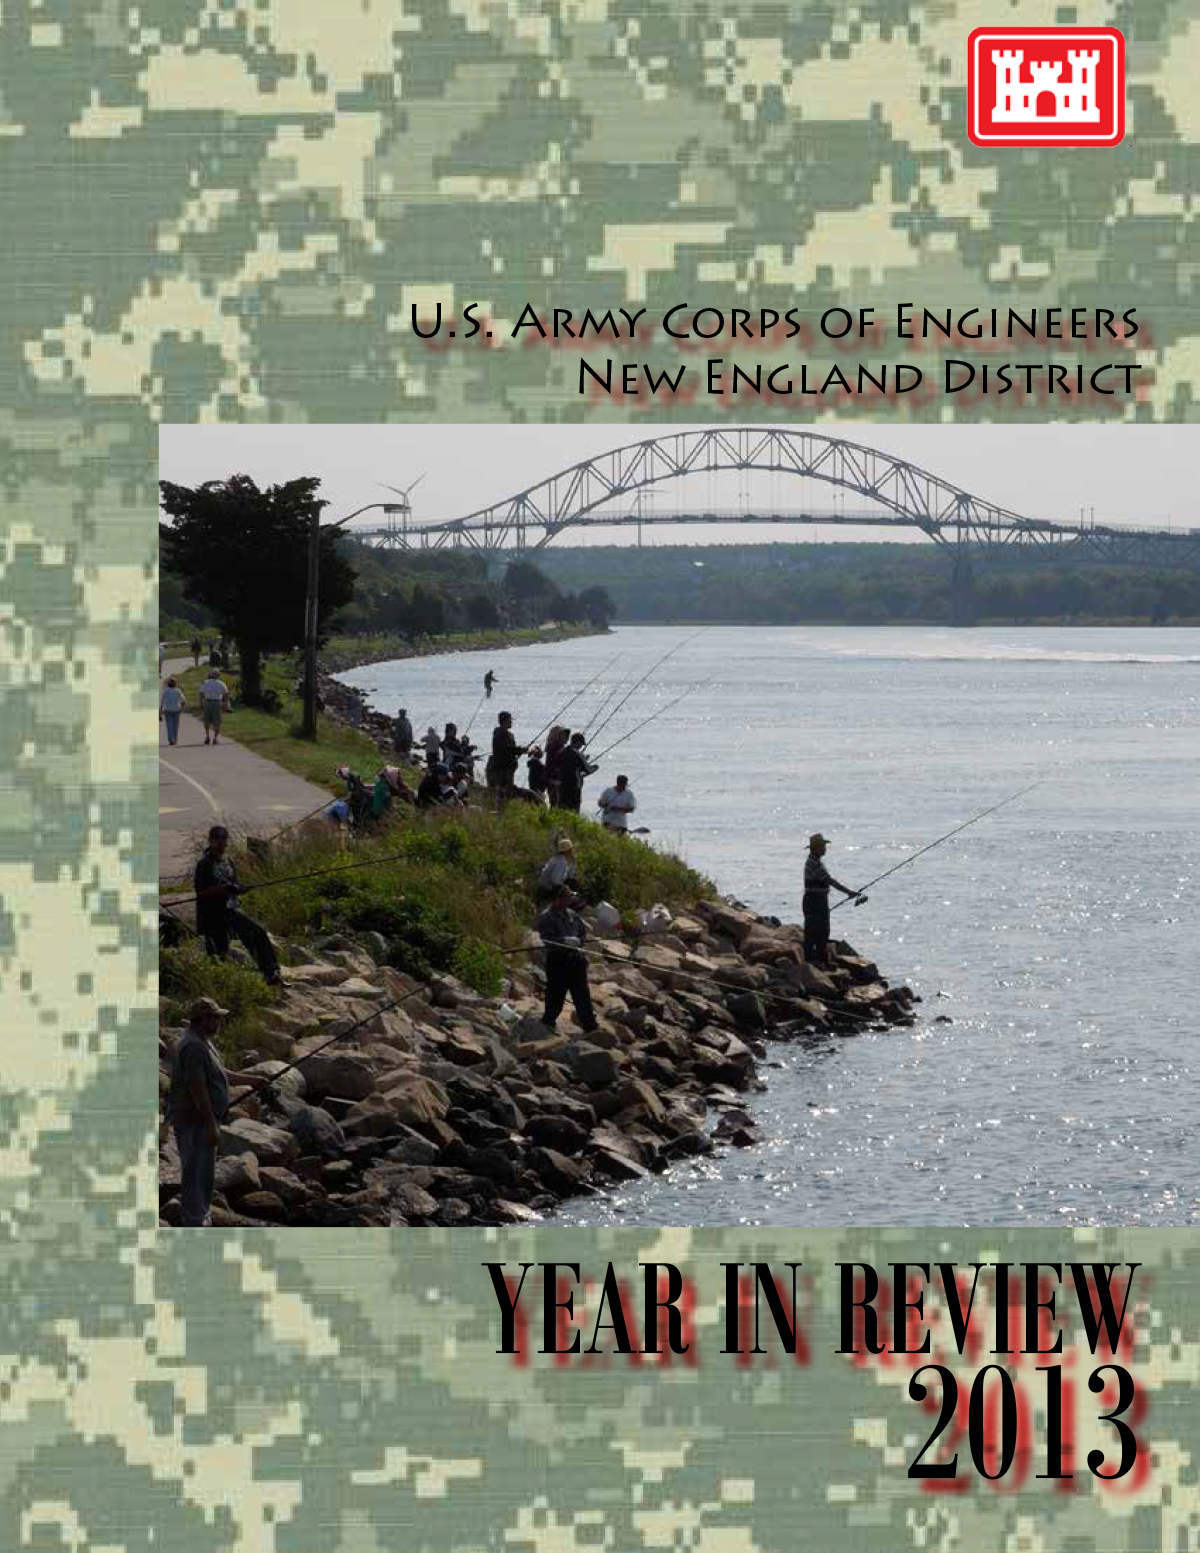 2013 Year in Review for the Yankee Engineer